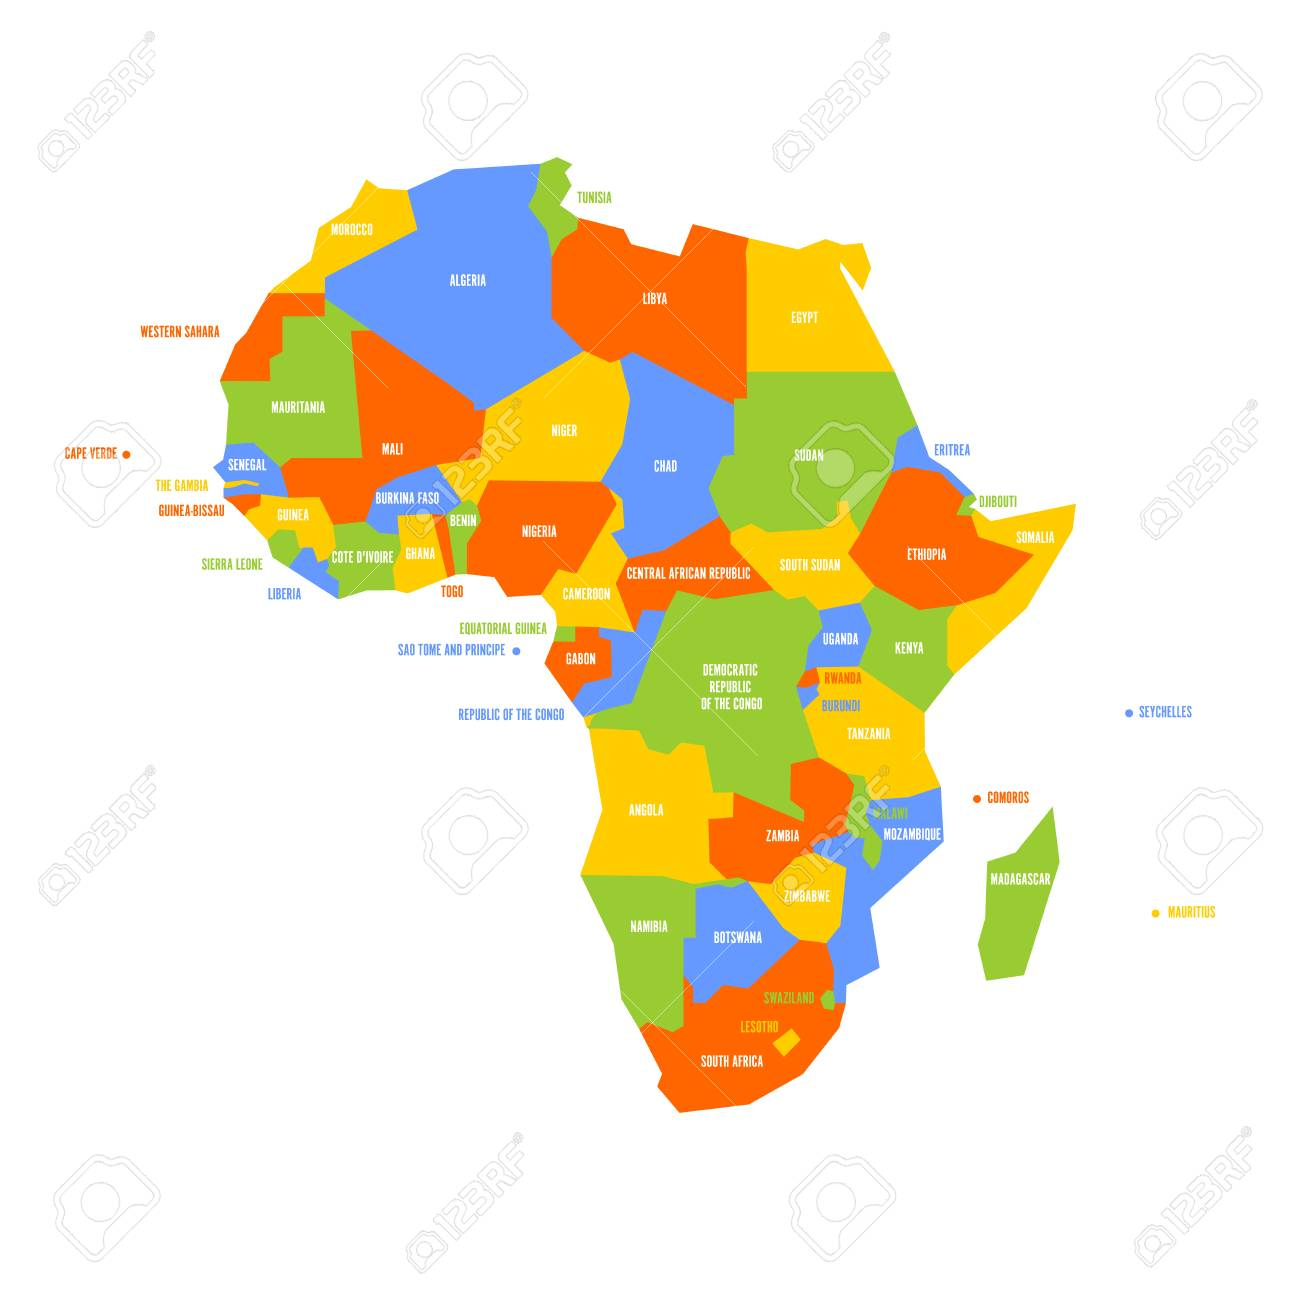 Very Simplified Infographical Political Map Of Africa Simple Royalty Free Cliparts Vectors And Stock Illustration Image 96613247